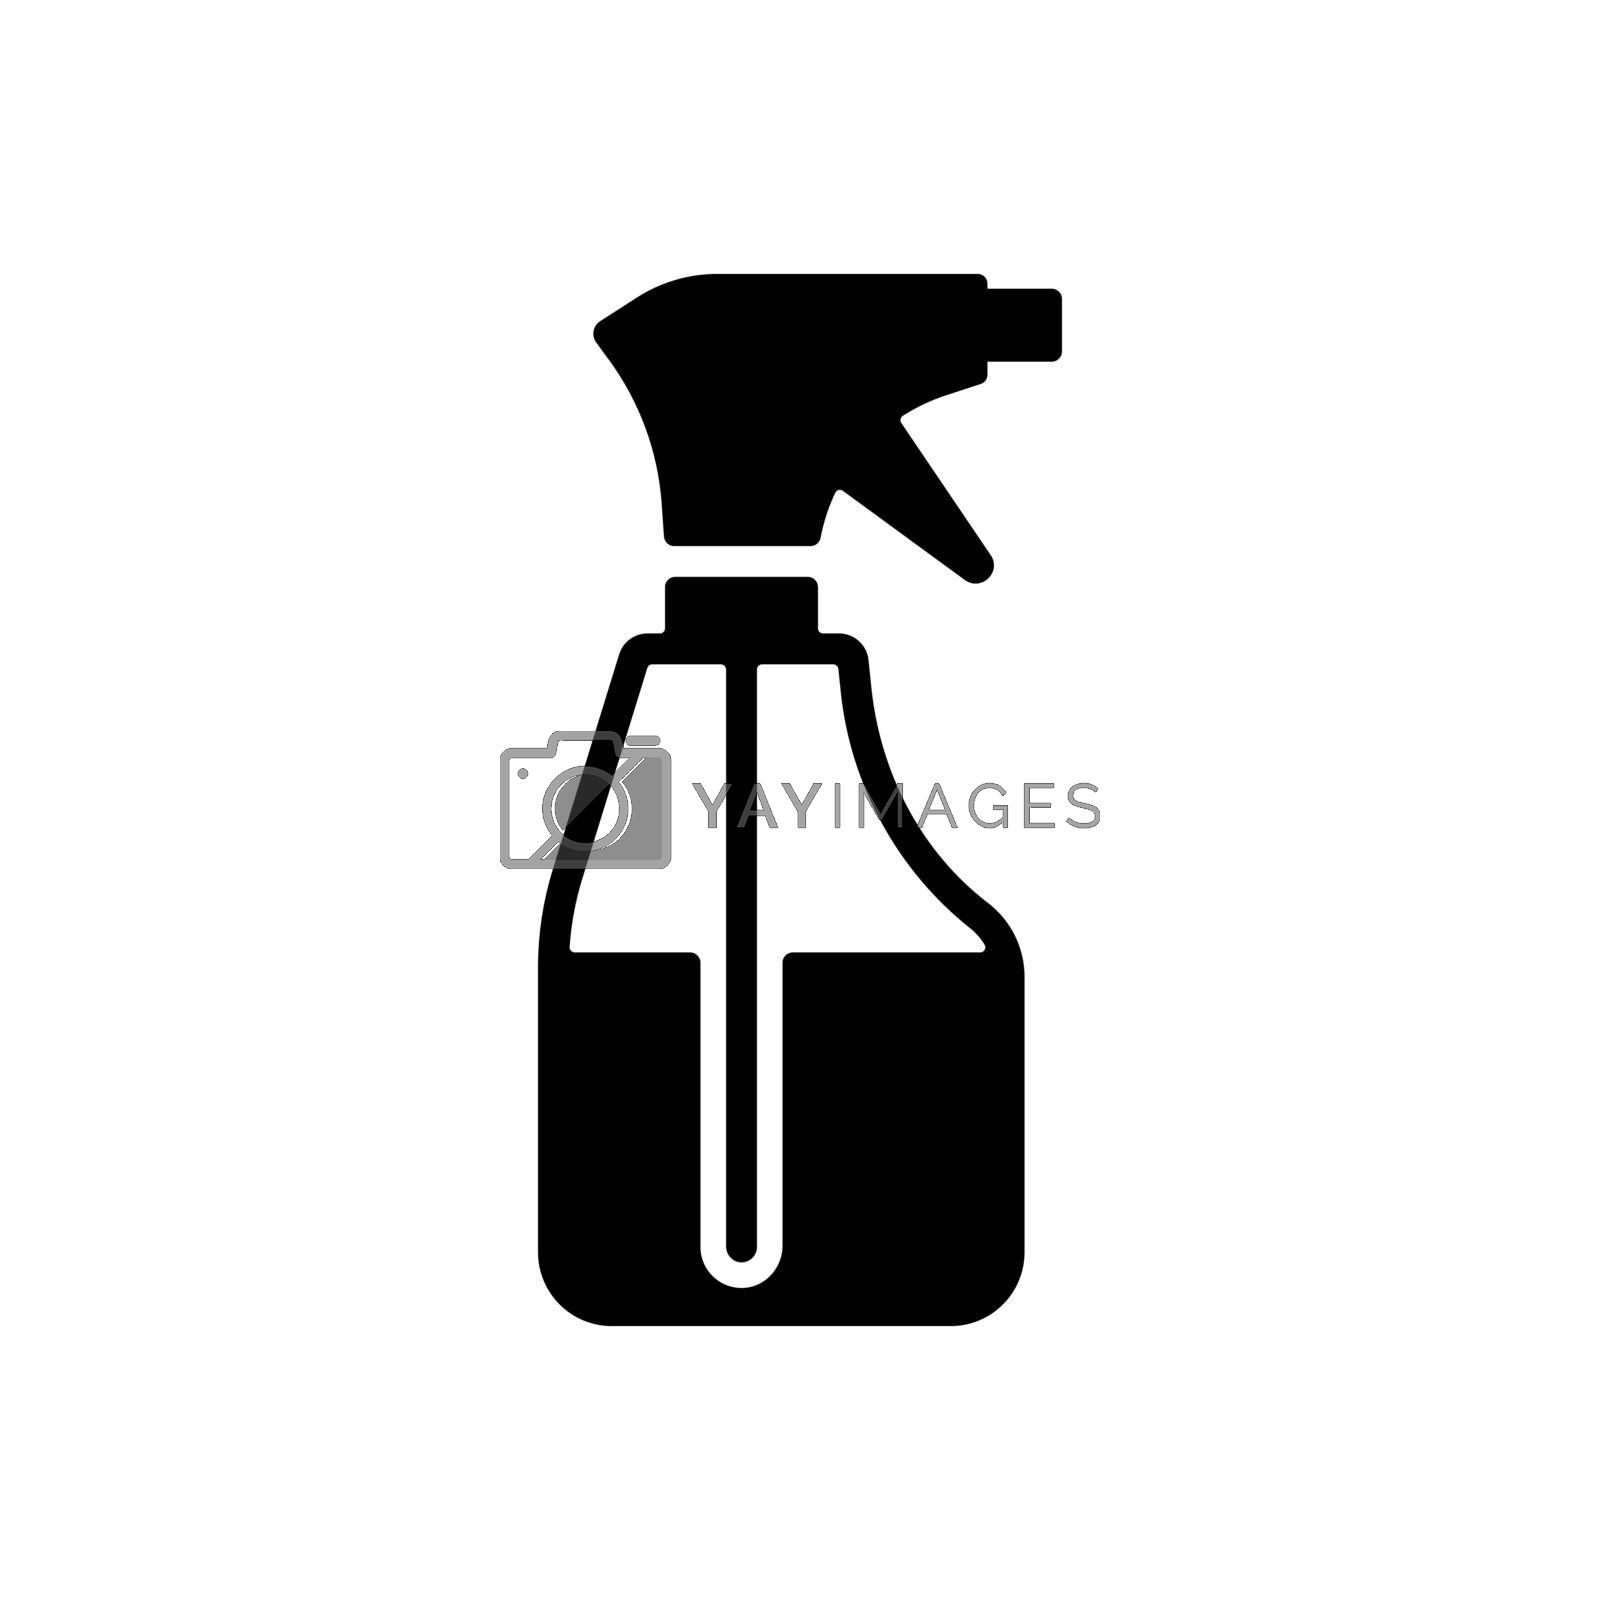 Cleaning spray bottle vector glyph icon. Coronavirus. Graph symbol for medical web site and apps design, logo, app, UI